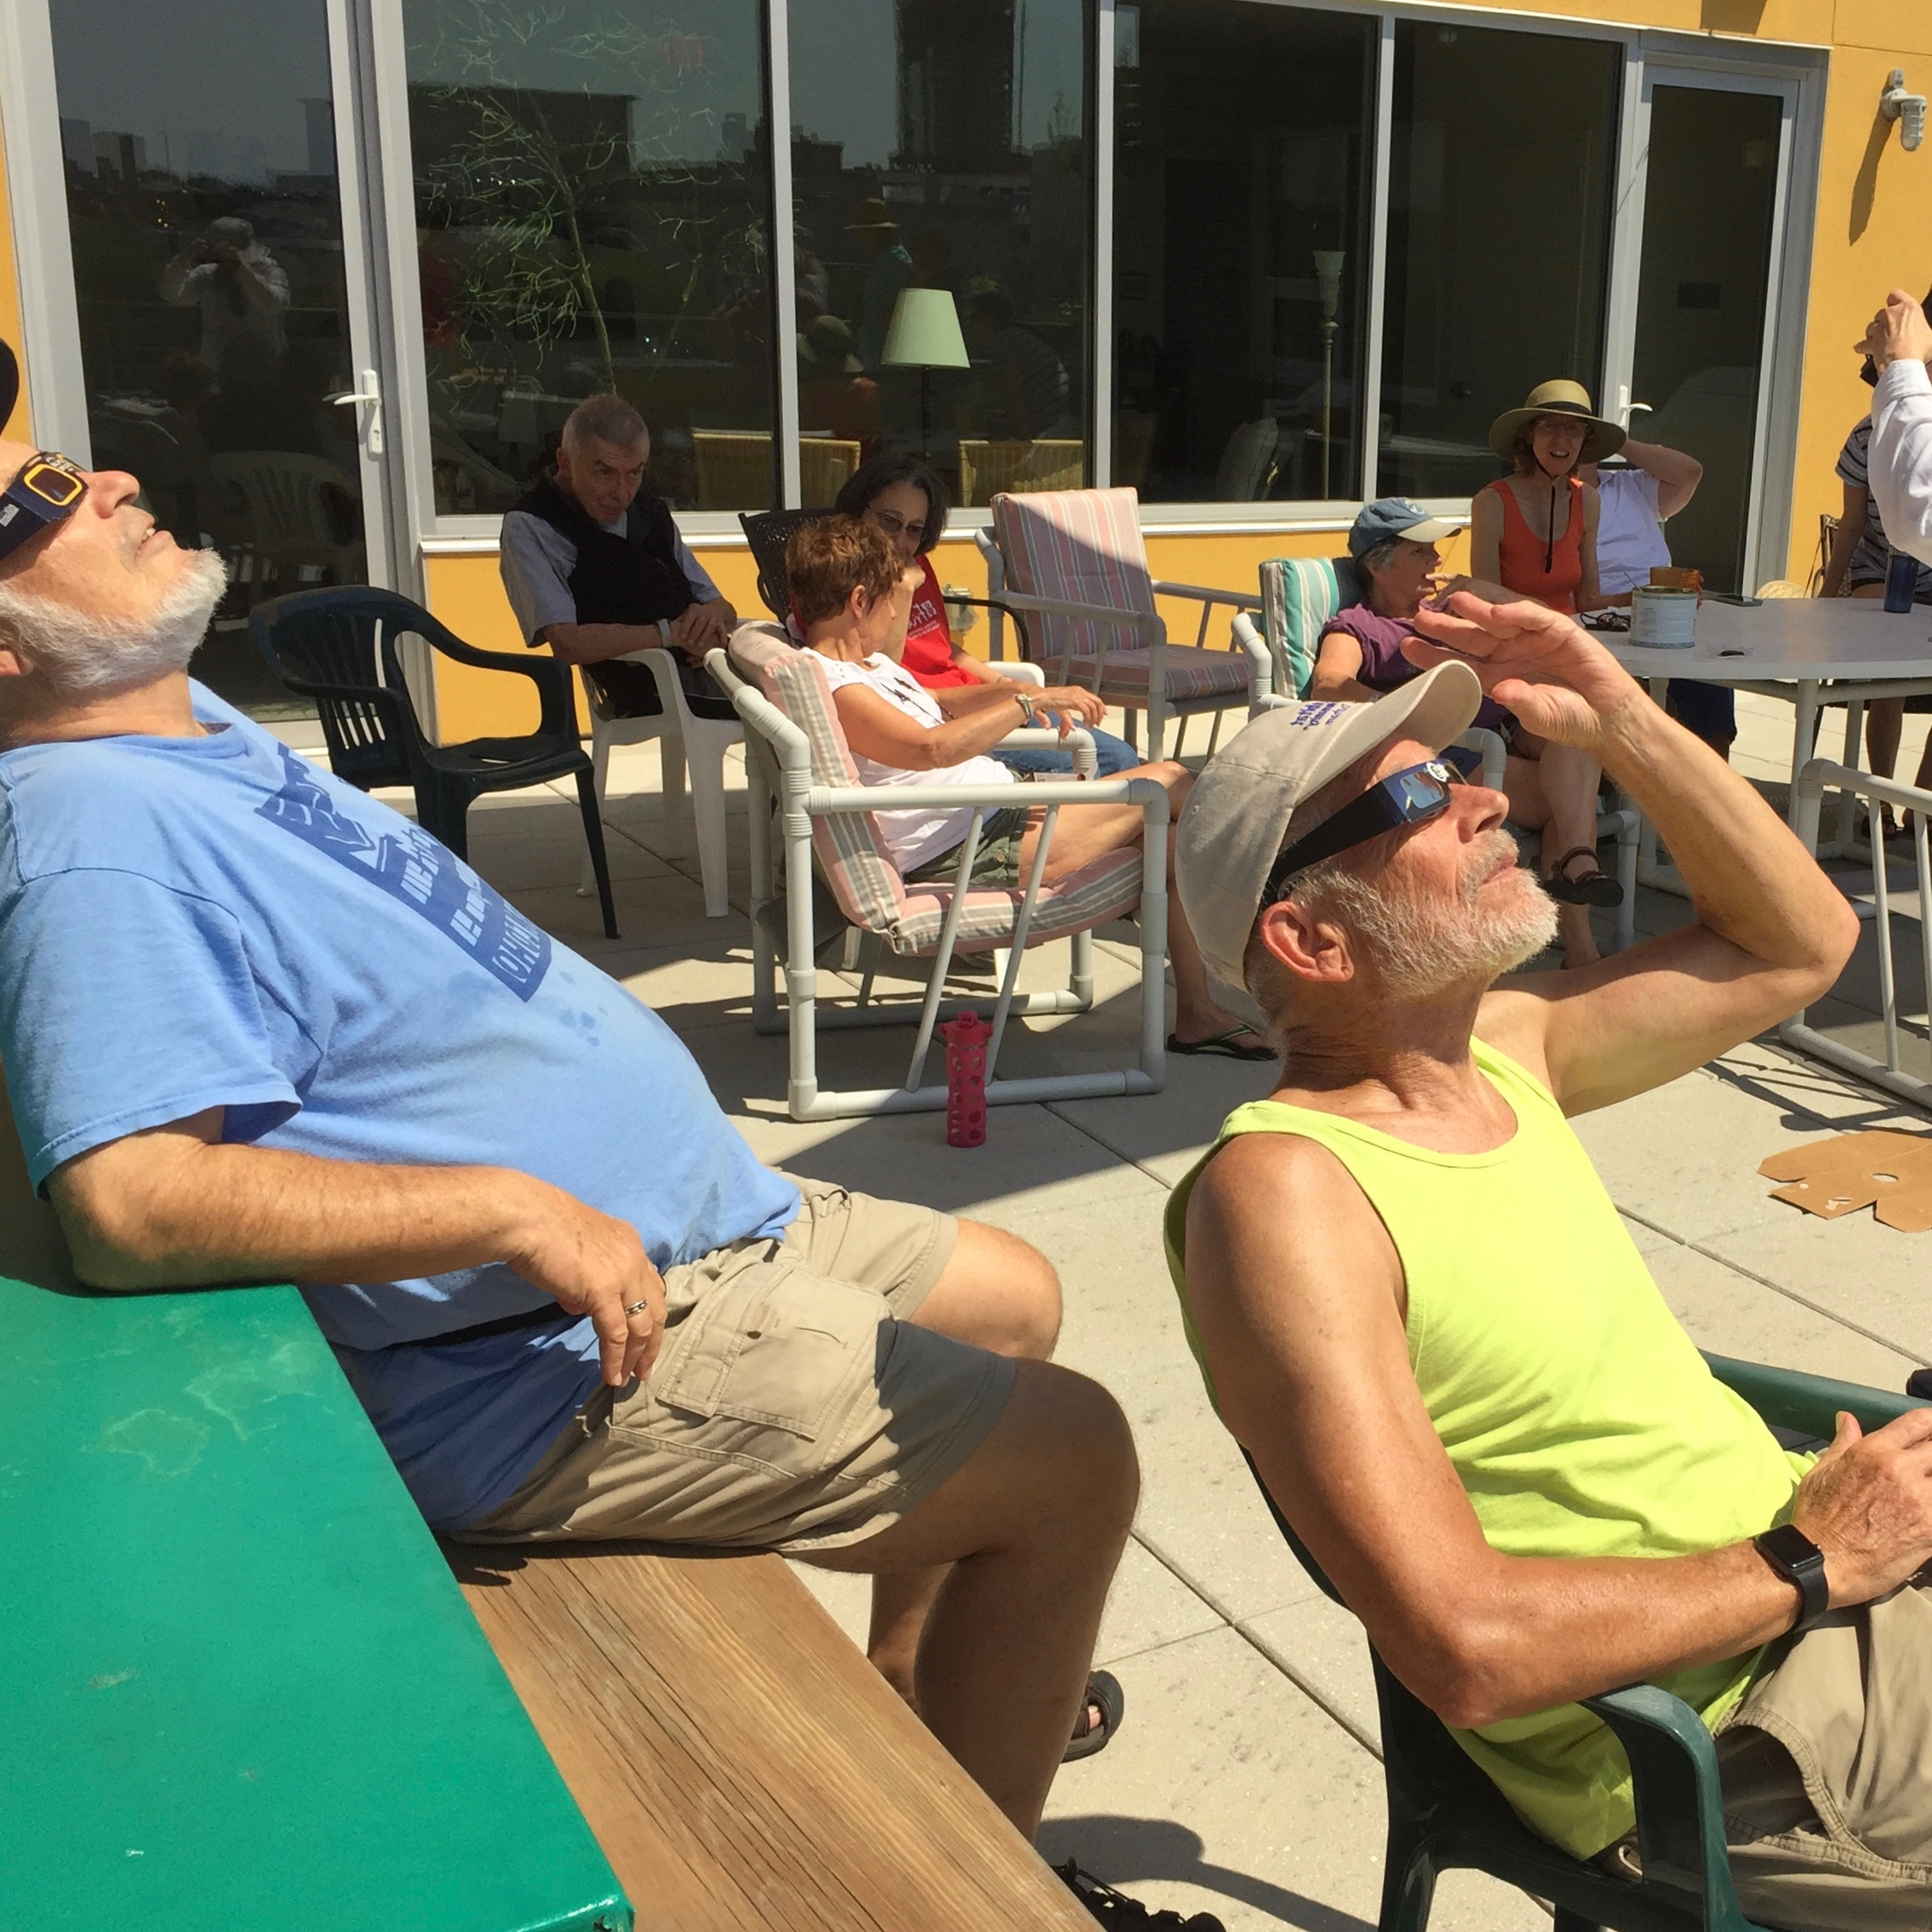 Rooftop eclipse watching